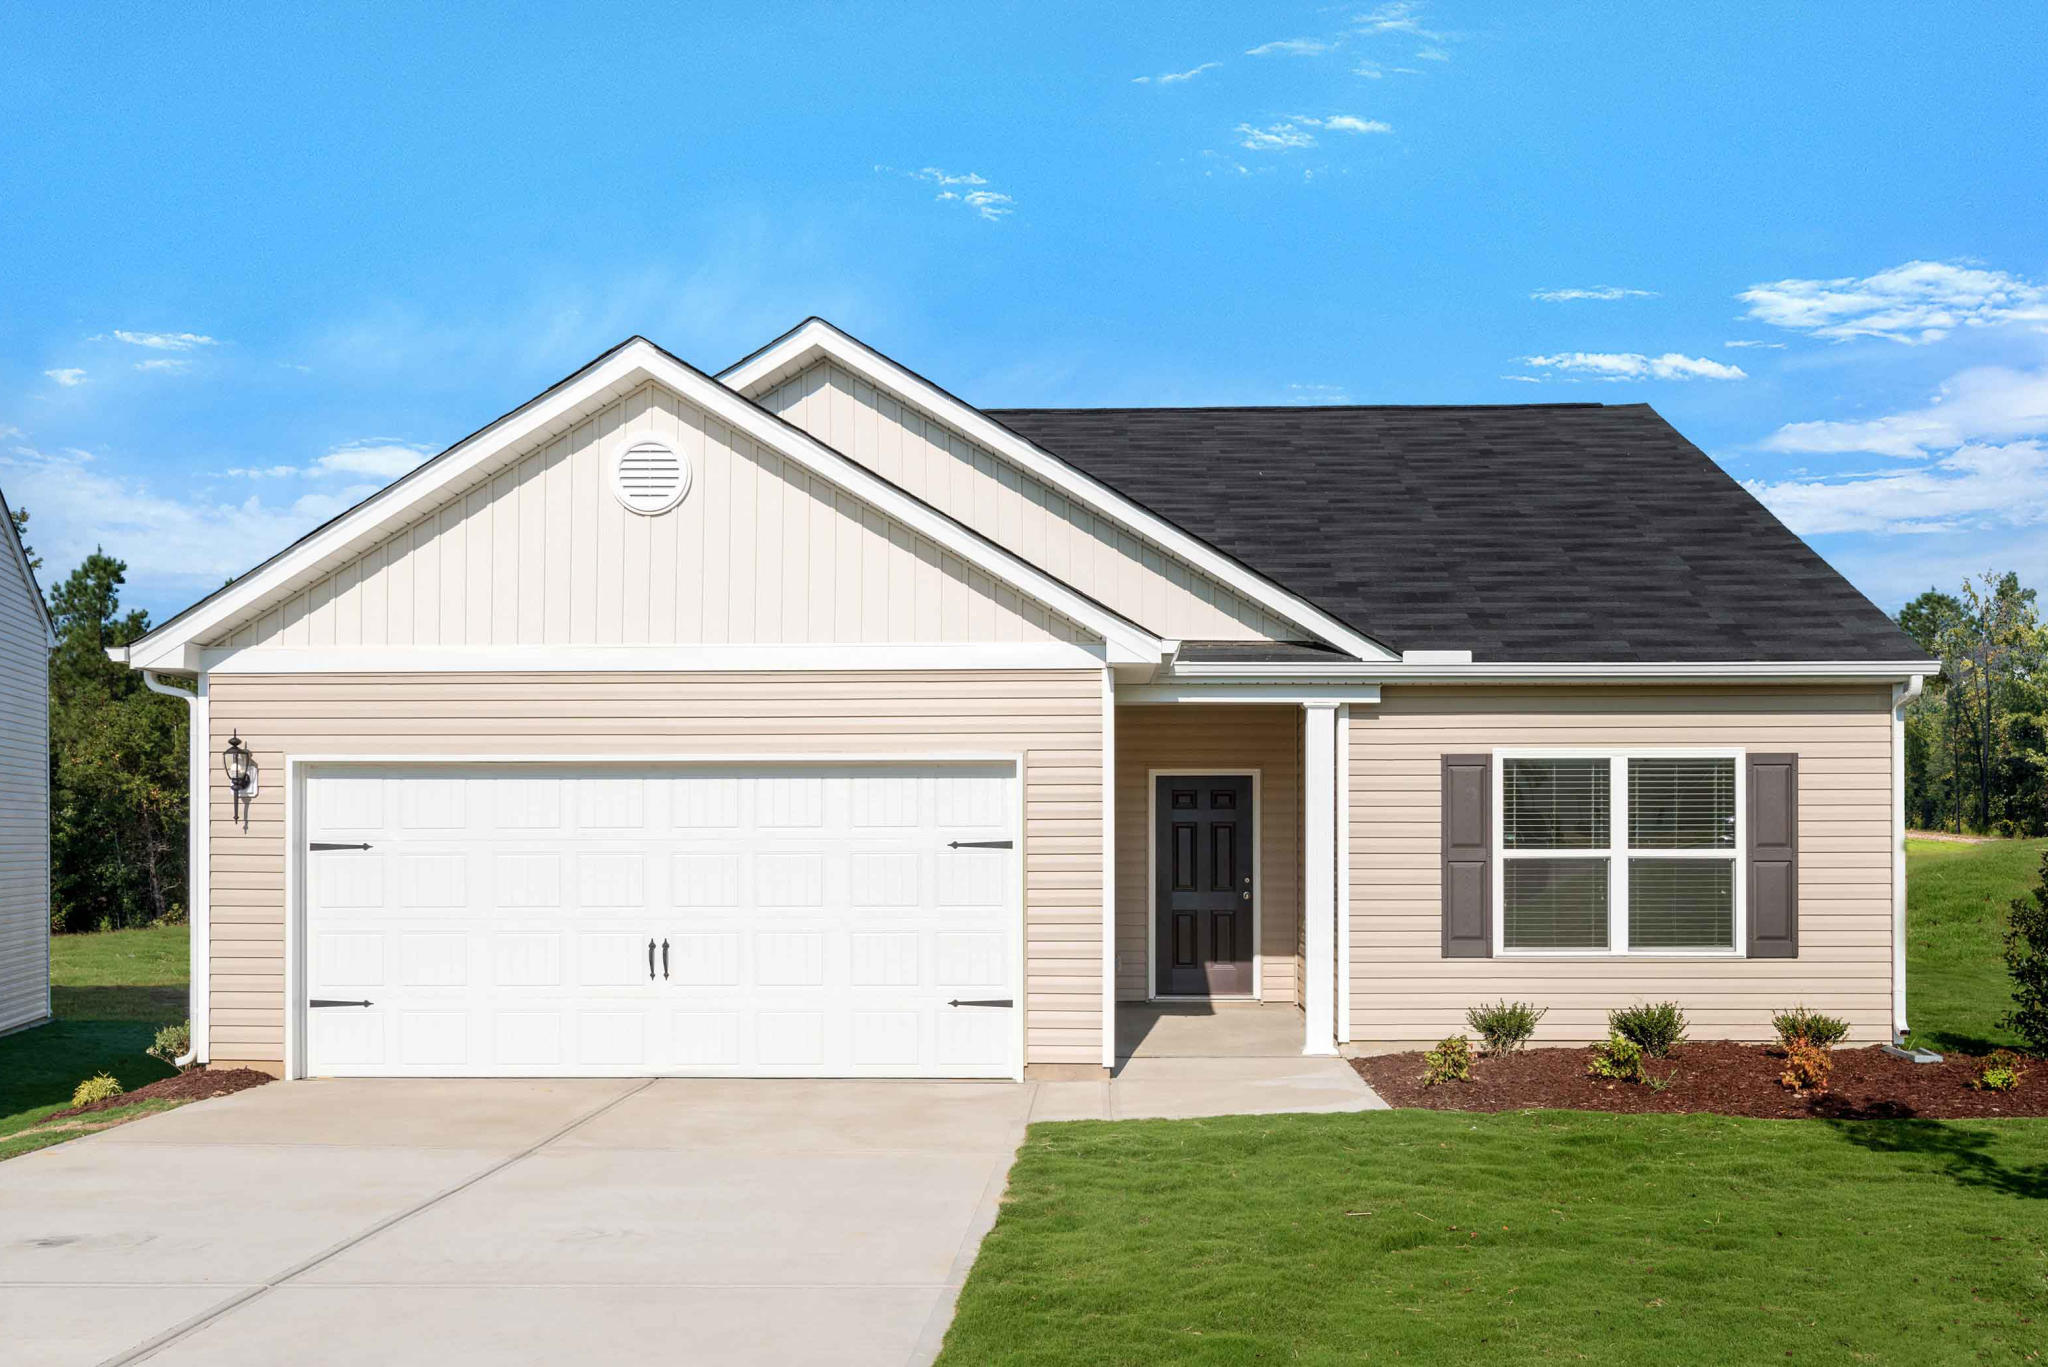 Kendall Farms By Lgi Homes New Homes For Sale Winston Salem